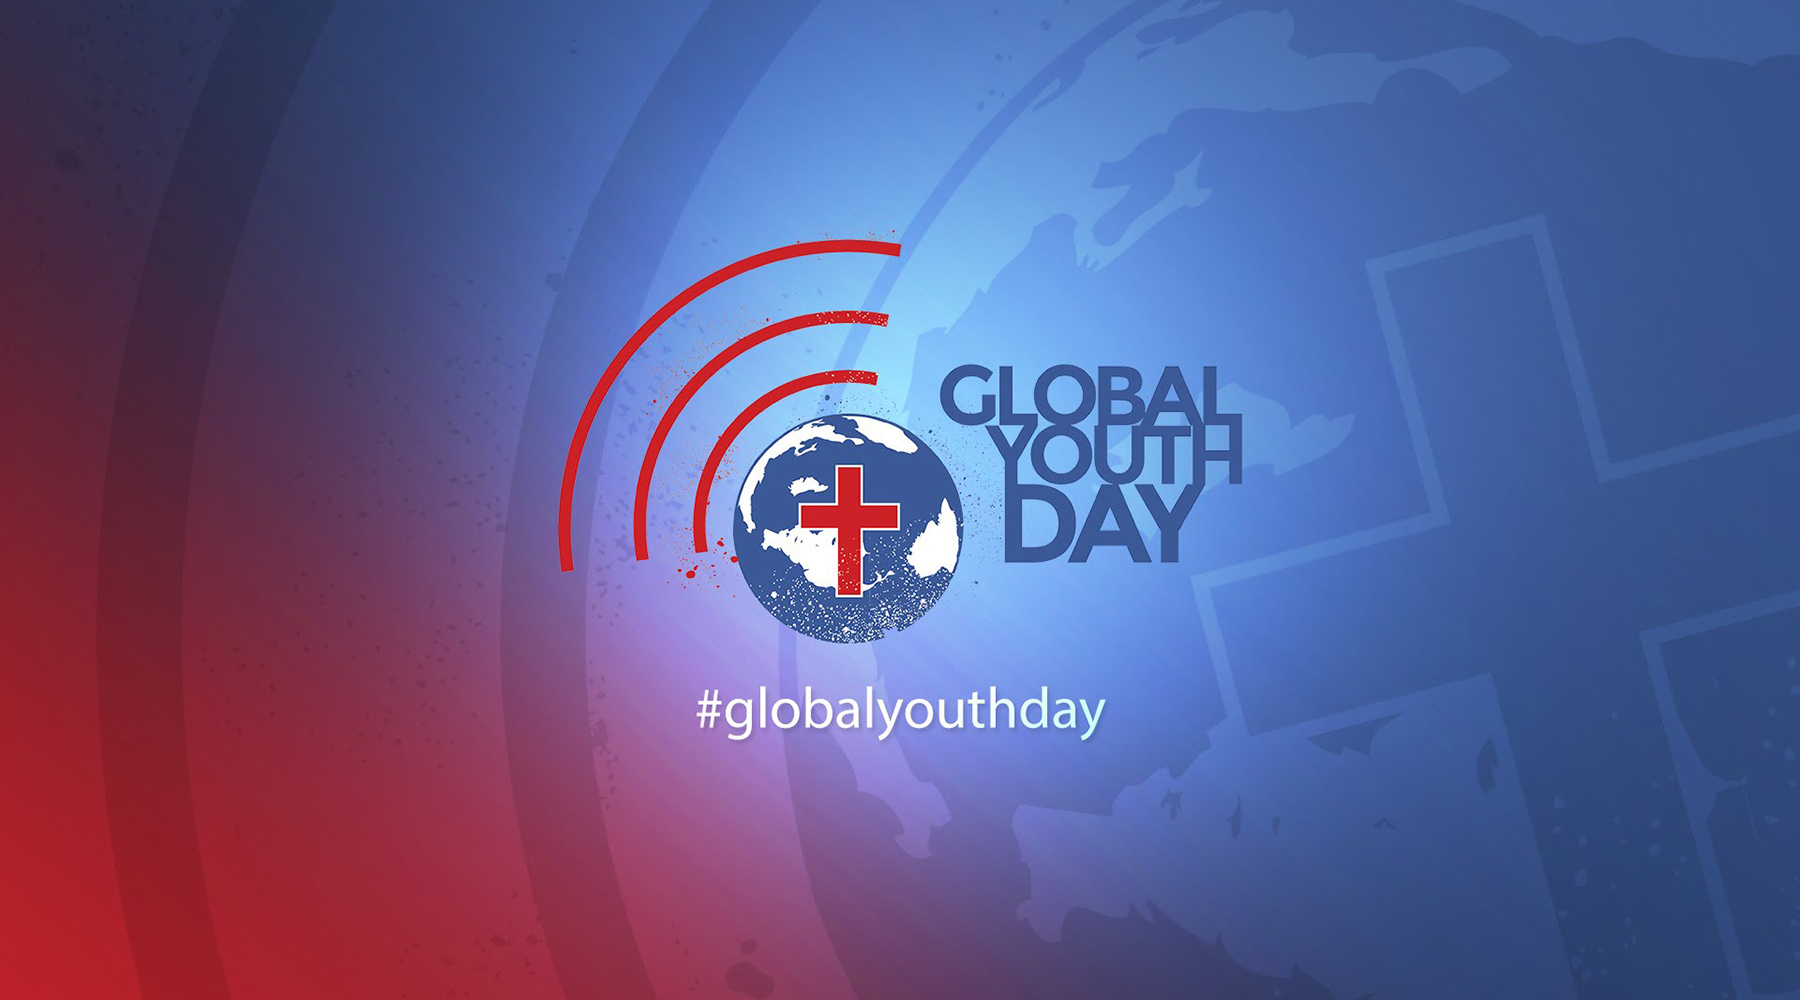 GLOBAL YOUTH DAY 2018 – SAVE THE DATE – 17 MARS 2018